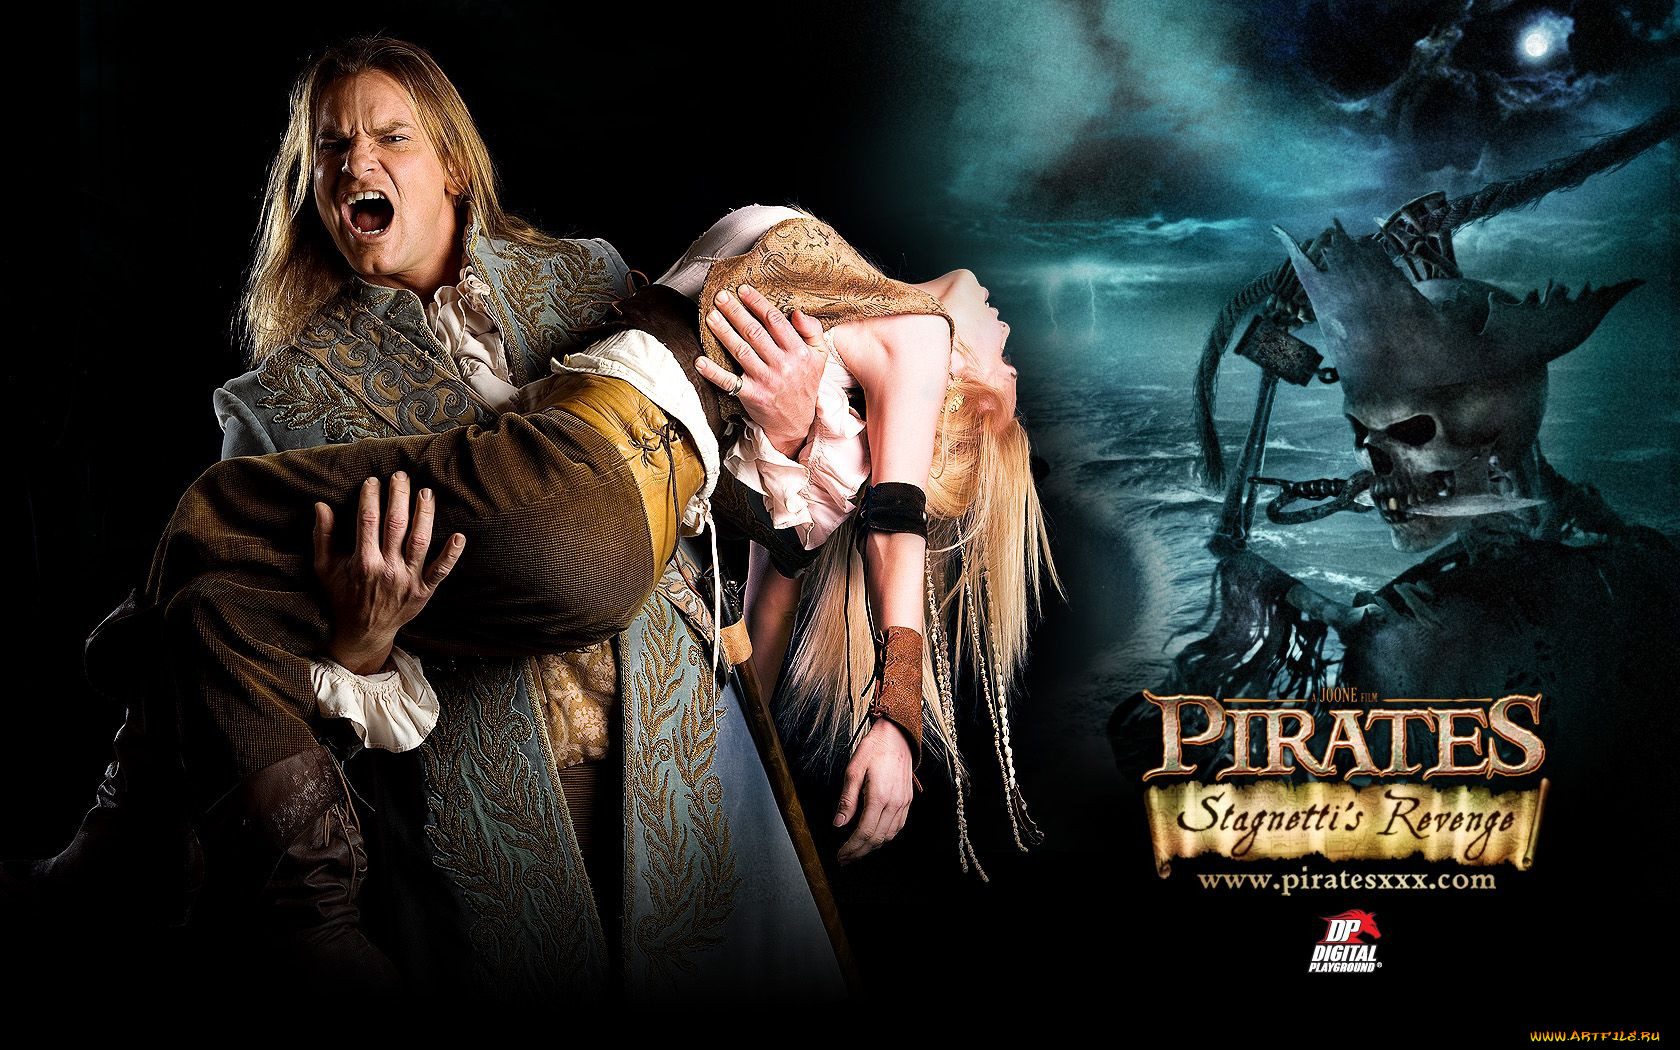 Online english movies pirates porn naked pic